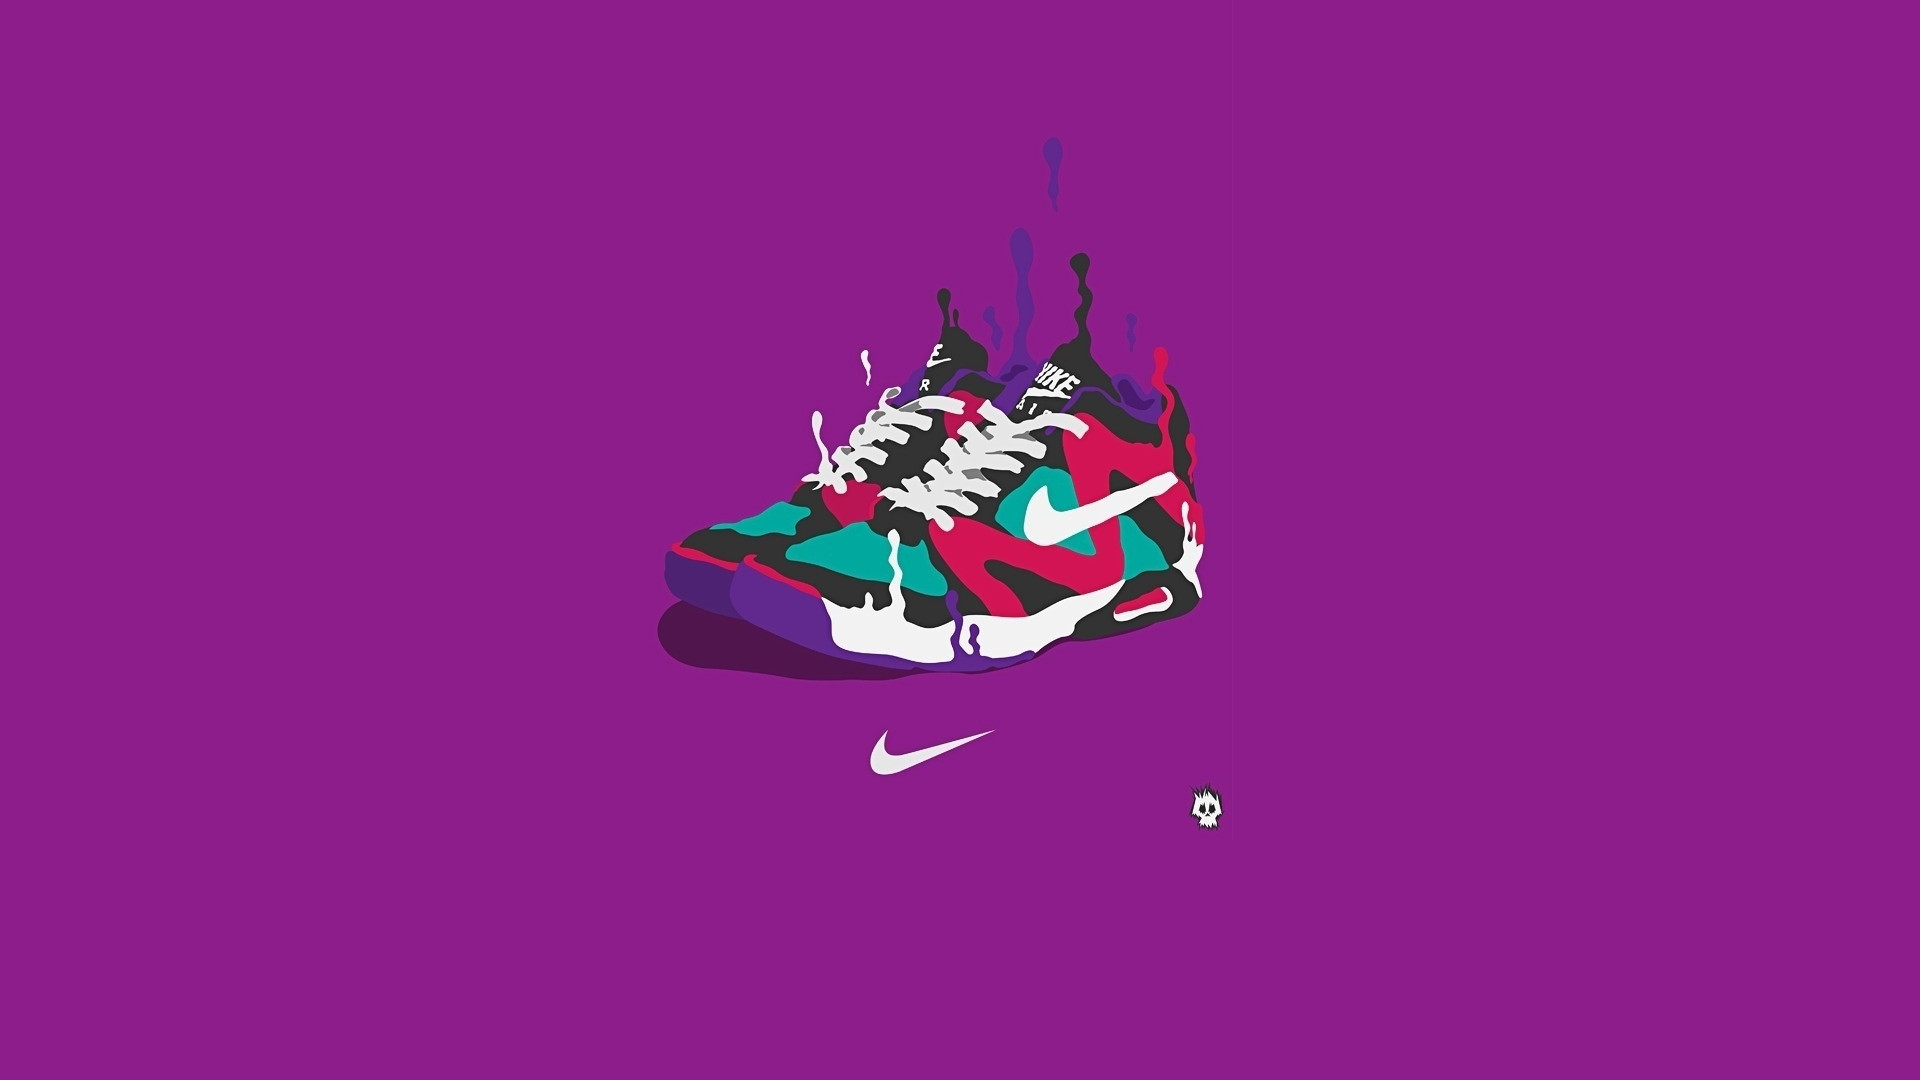 Nike Sport Wallpaper 4k: Nike Shoes Wallpapers Desktop (60+ Images